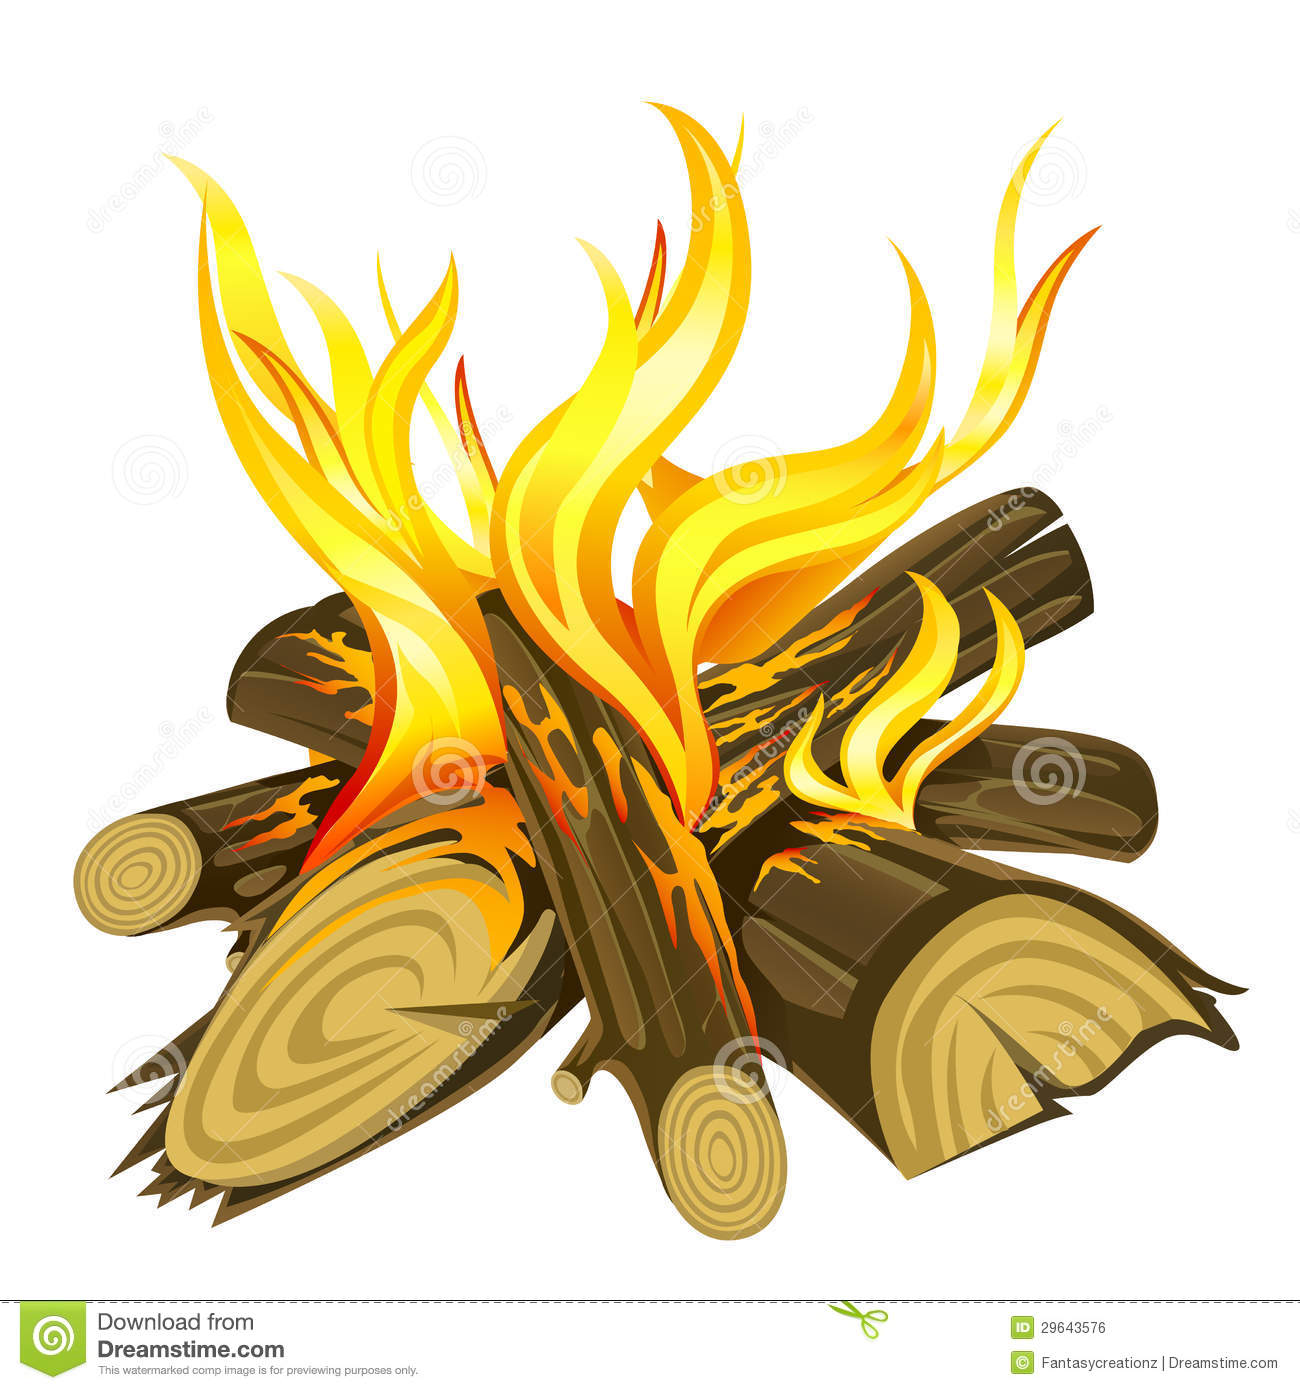 An illustration of a campfire isolated in white background.